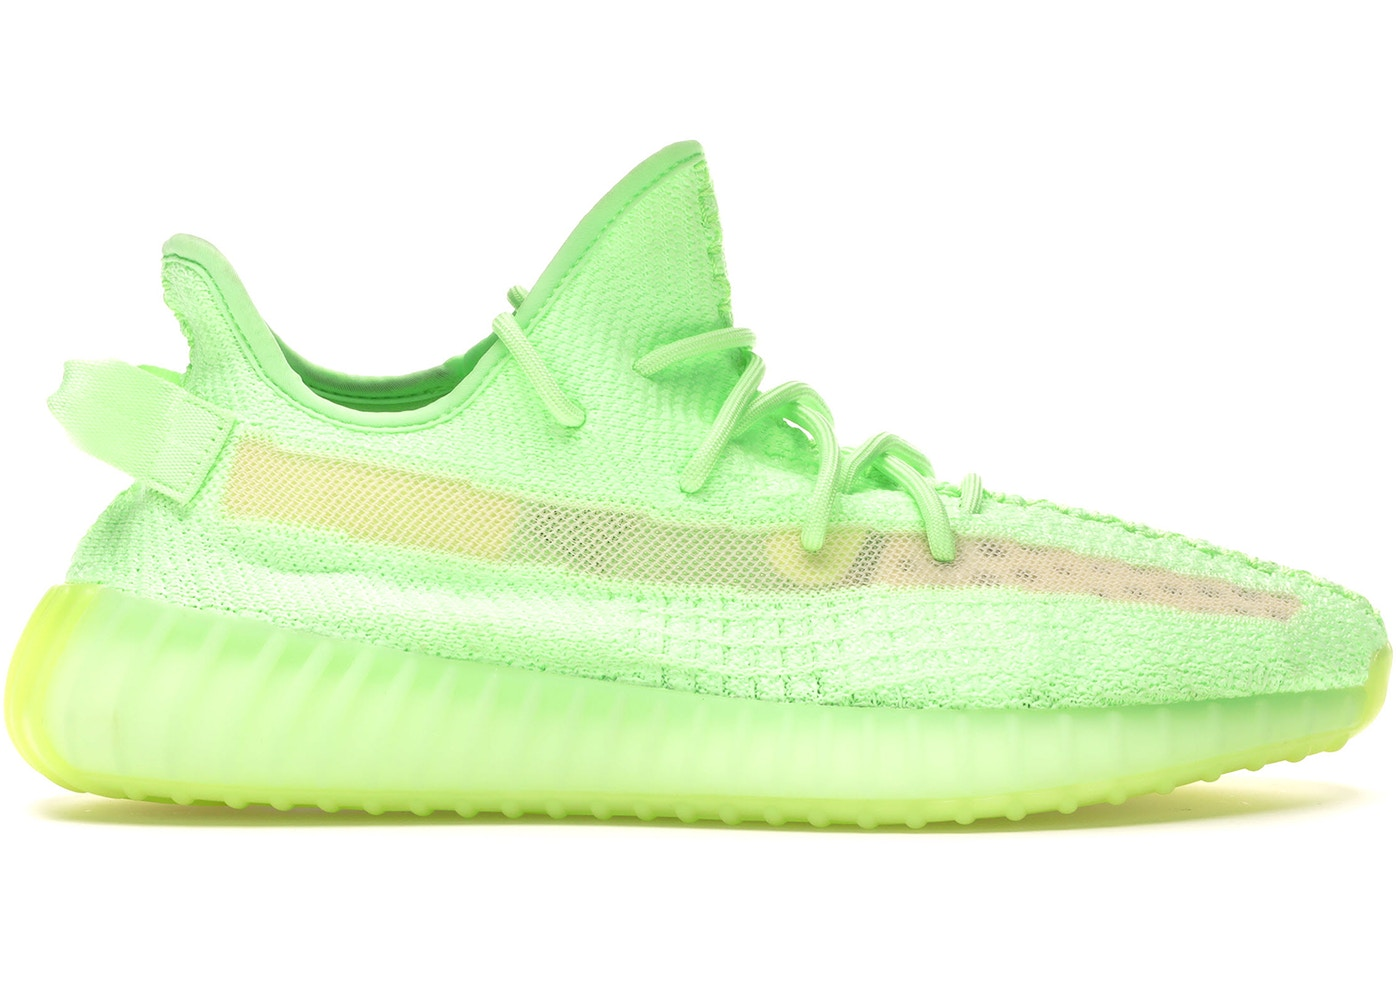 new style d8fce c8c6f Buy adidas Yeezy Shoes & Deadstock Sneakers